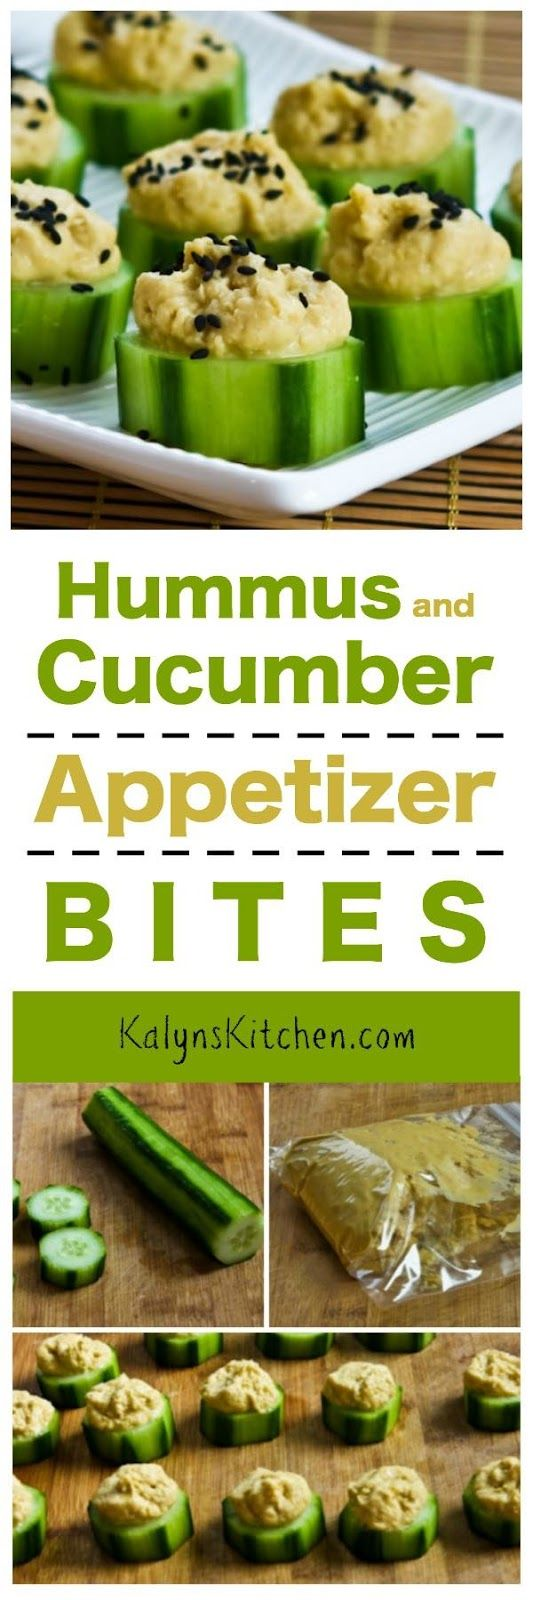 Every holiday or football-watching party needs at least one healthy appetizer, and these Hummus and Cucumber Appetizer Bites with Sesame Seeds are tasty and easy to make! [found on KalynsKitchen.com] #HealthyAppetizers #CucumberHummusAppetizer #Hummus